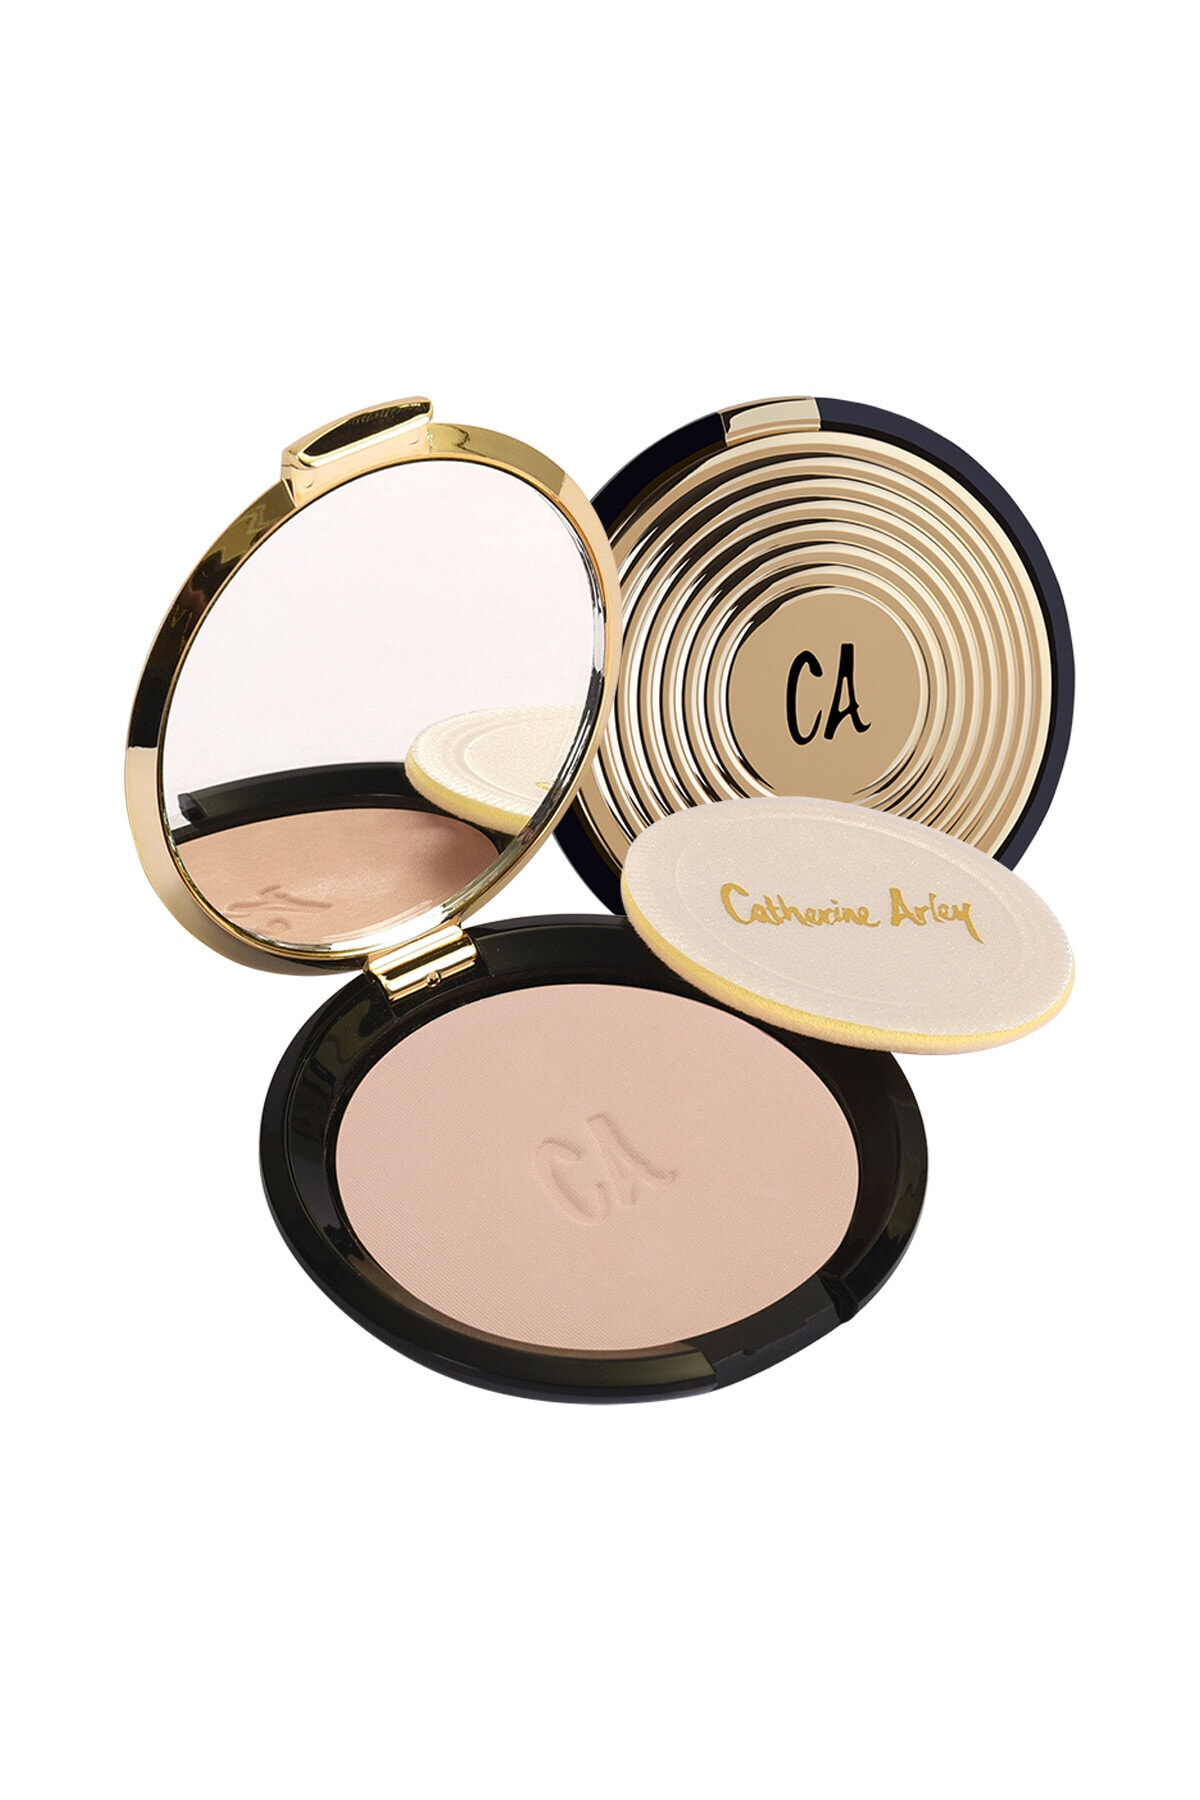 Catherine Arley Gold Compact Powder (Gold Pudra) - 101 - 1